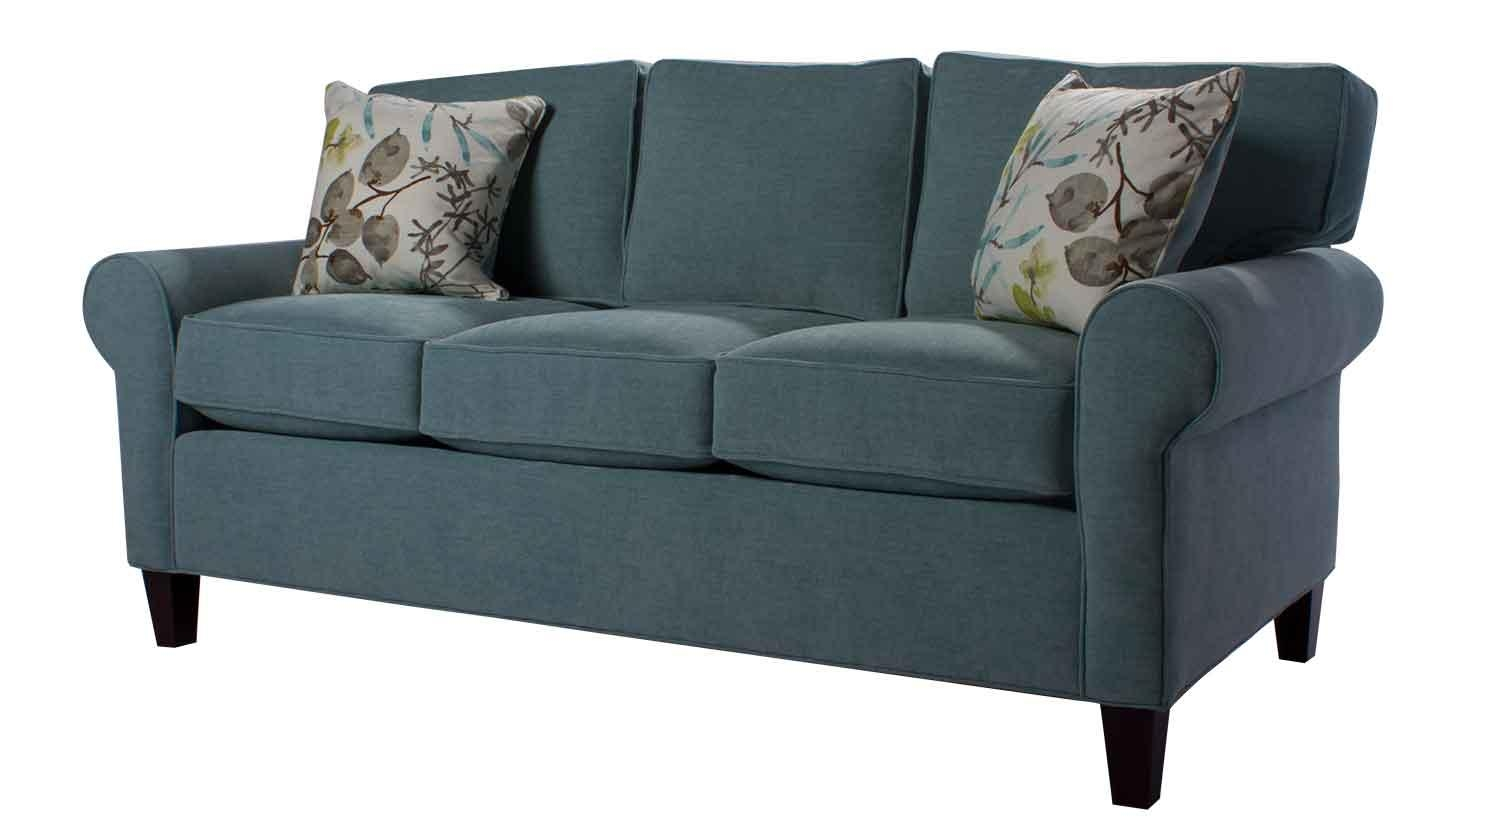 Circle Furniture – Copley Sofa | Sofas | Boston Furniture | Circle In Circle Sofas (Image 2 of 20)